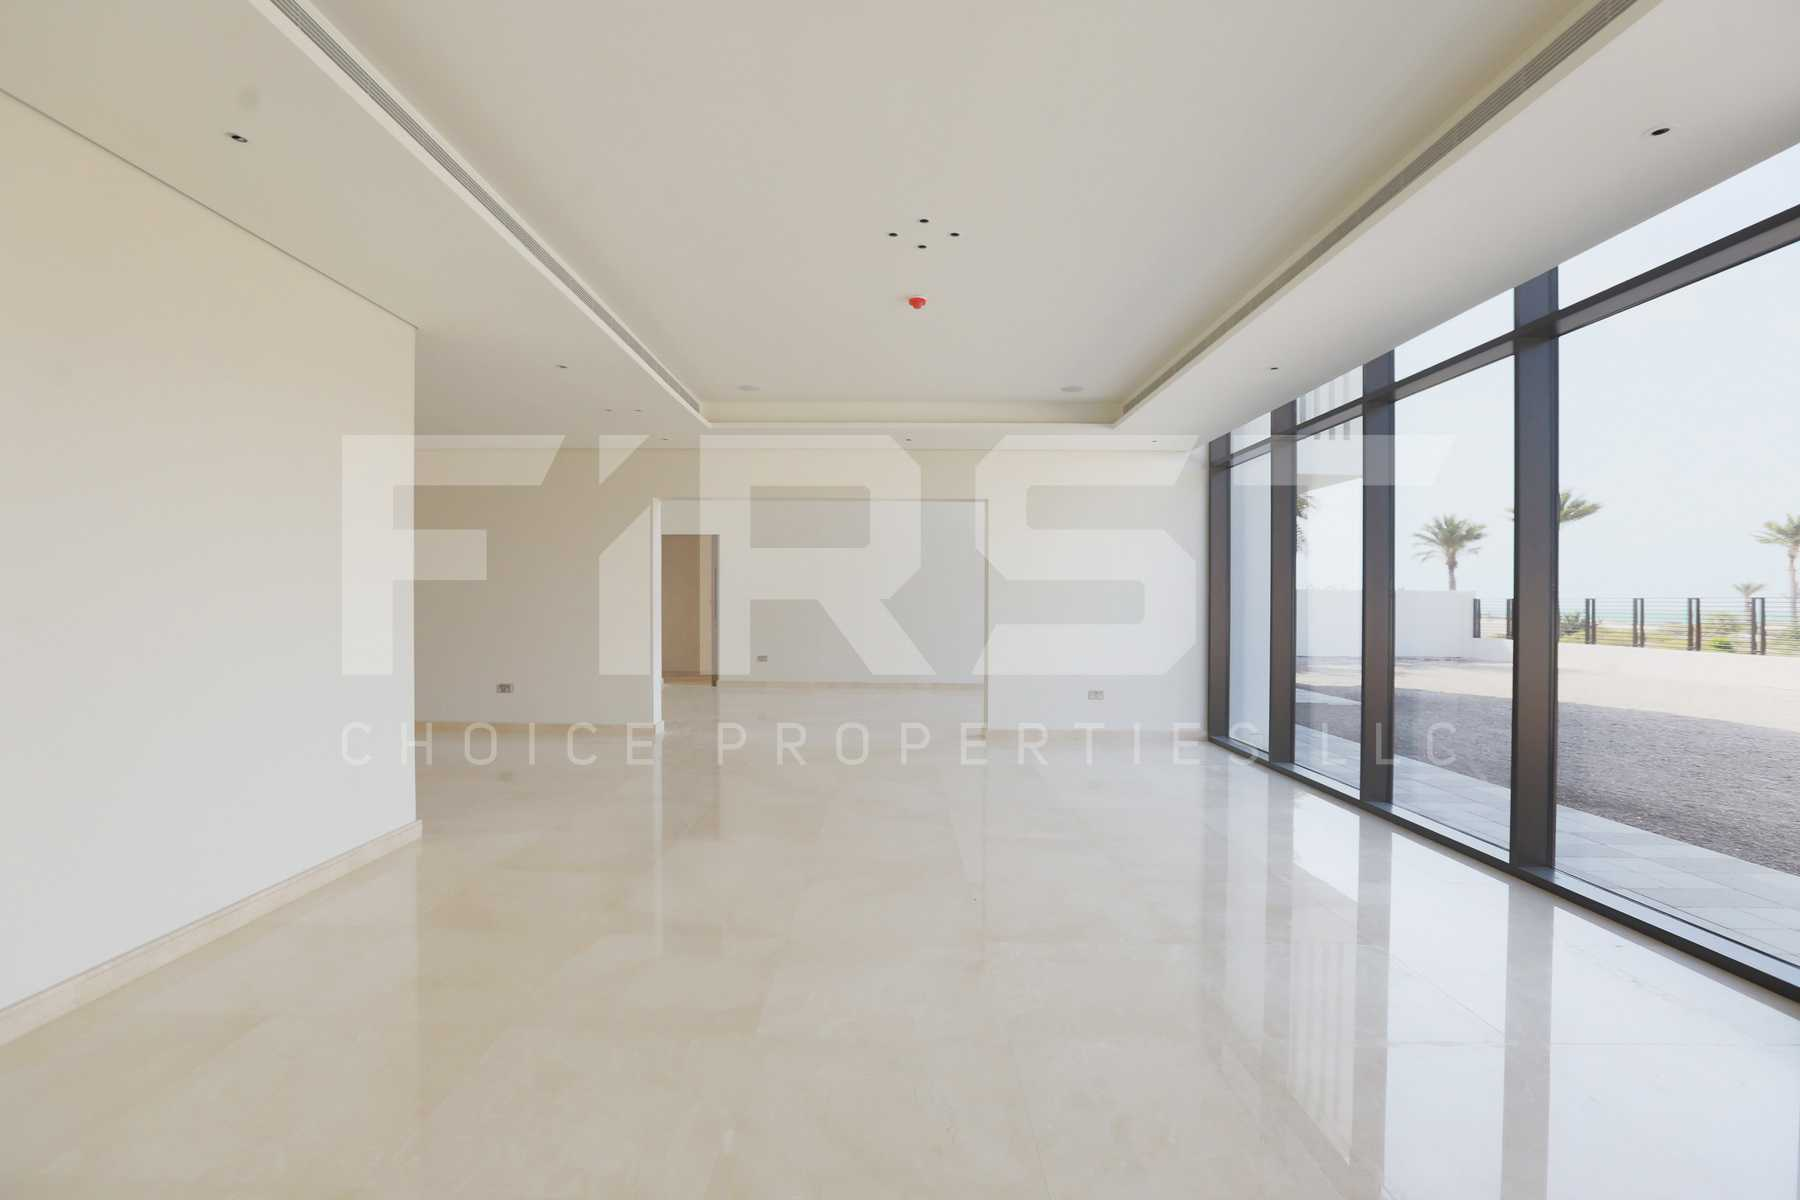 Internal Photo of 5 Bedroom Villa in Jawaher Saadiyat Saadiyat Island Abu Dhabi UAE (2).jpg